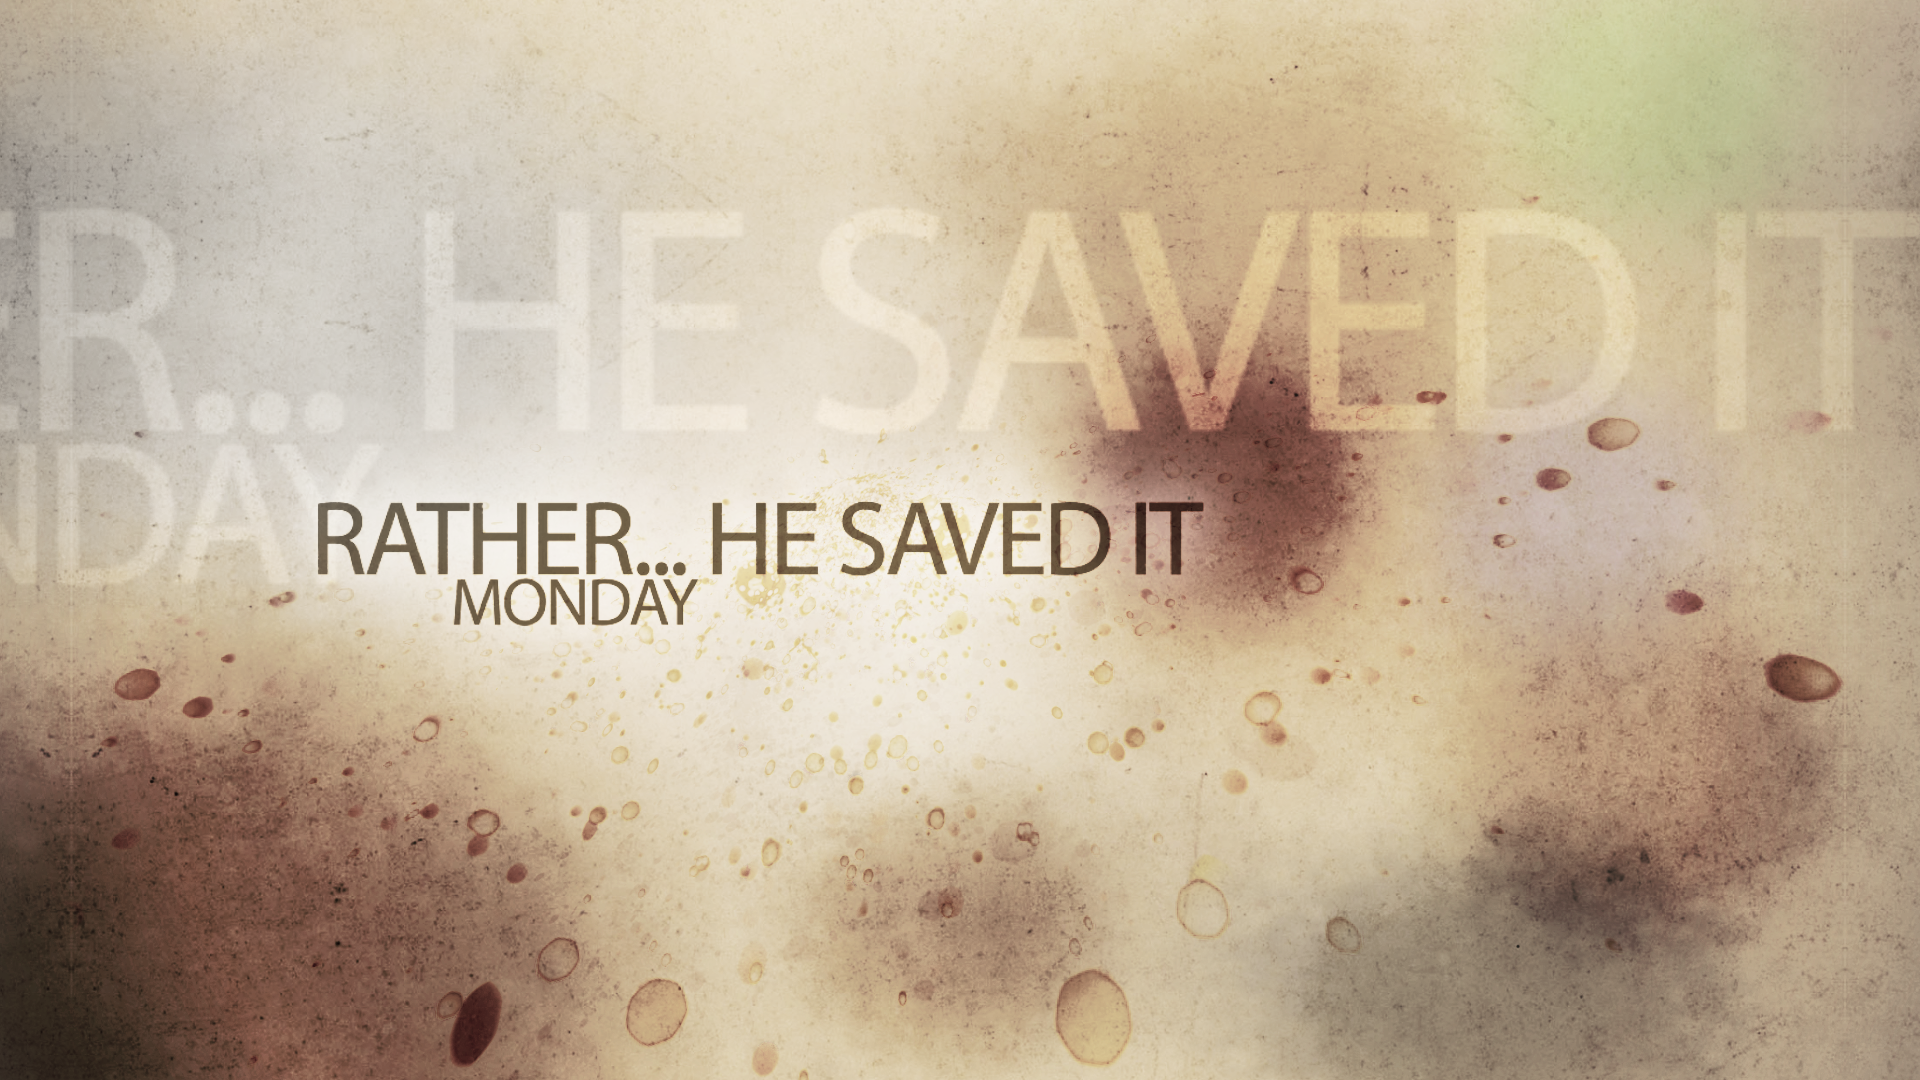 Rather... He saved